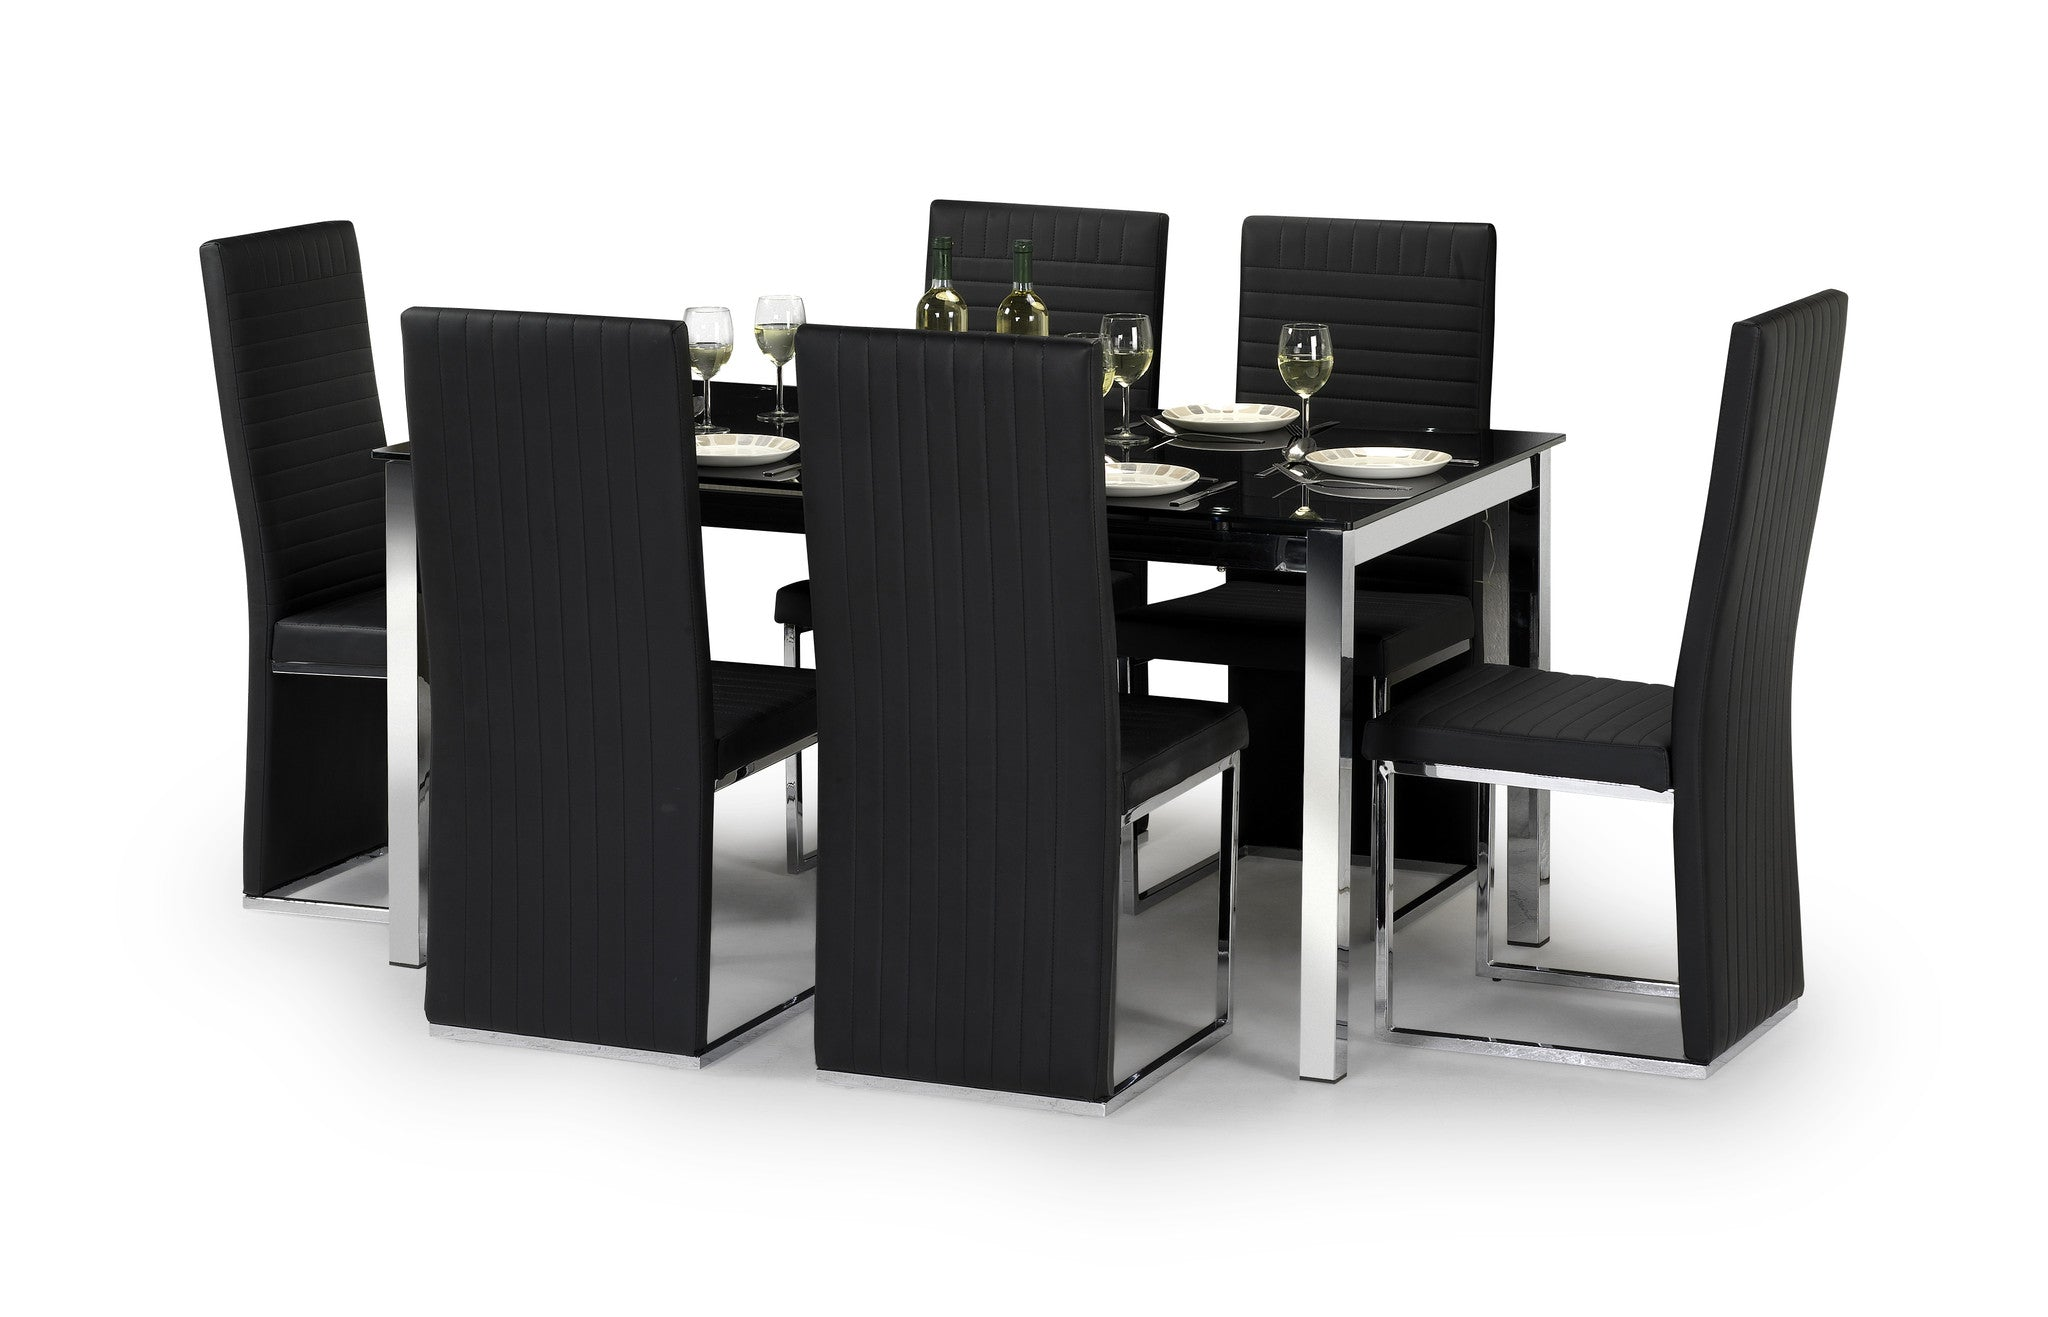 TEMPO DINING TABLE 6 CHAIRS Ideal Furnishings